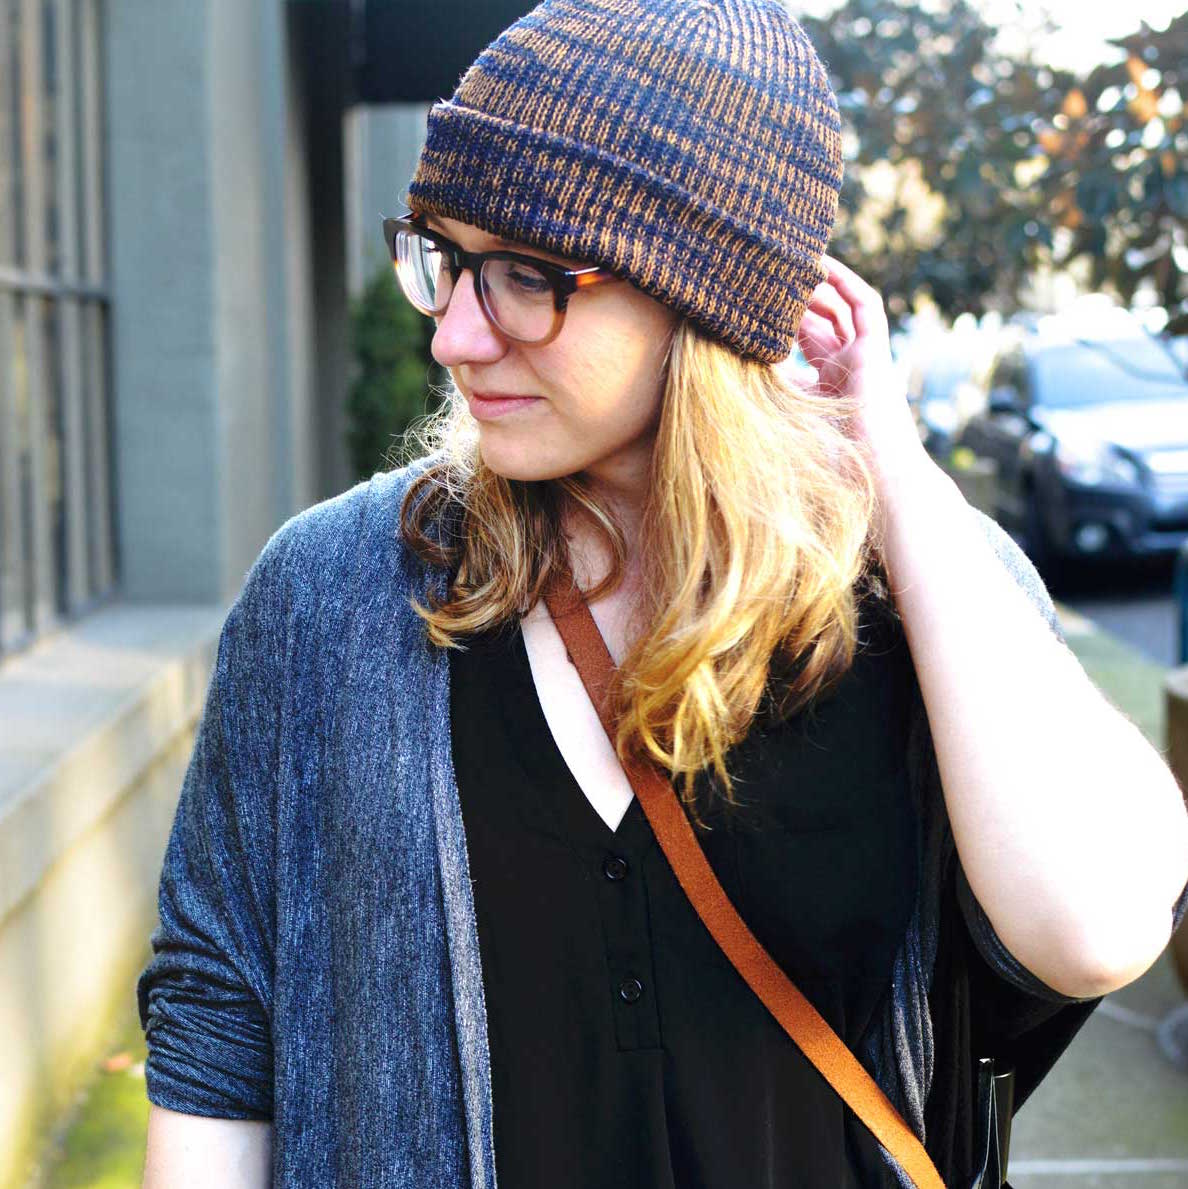 BEANIE AND SNEAKS: KEEPING IT WEIRD IN PORTLAND